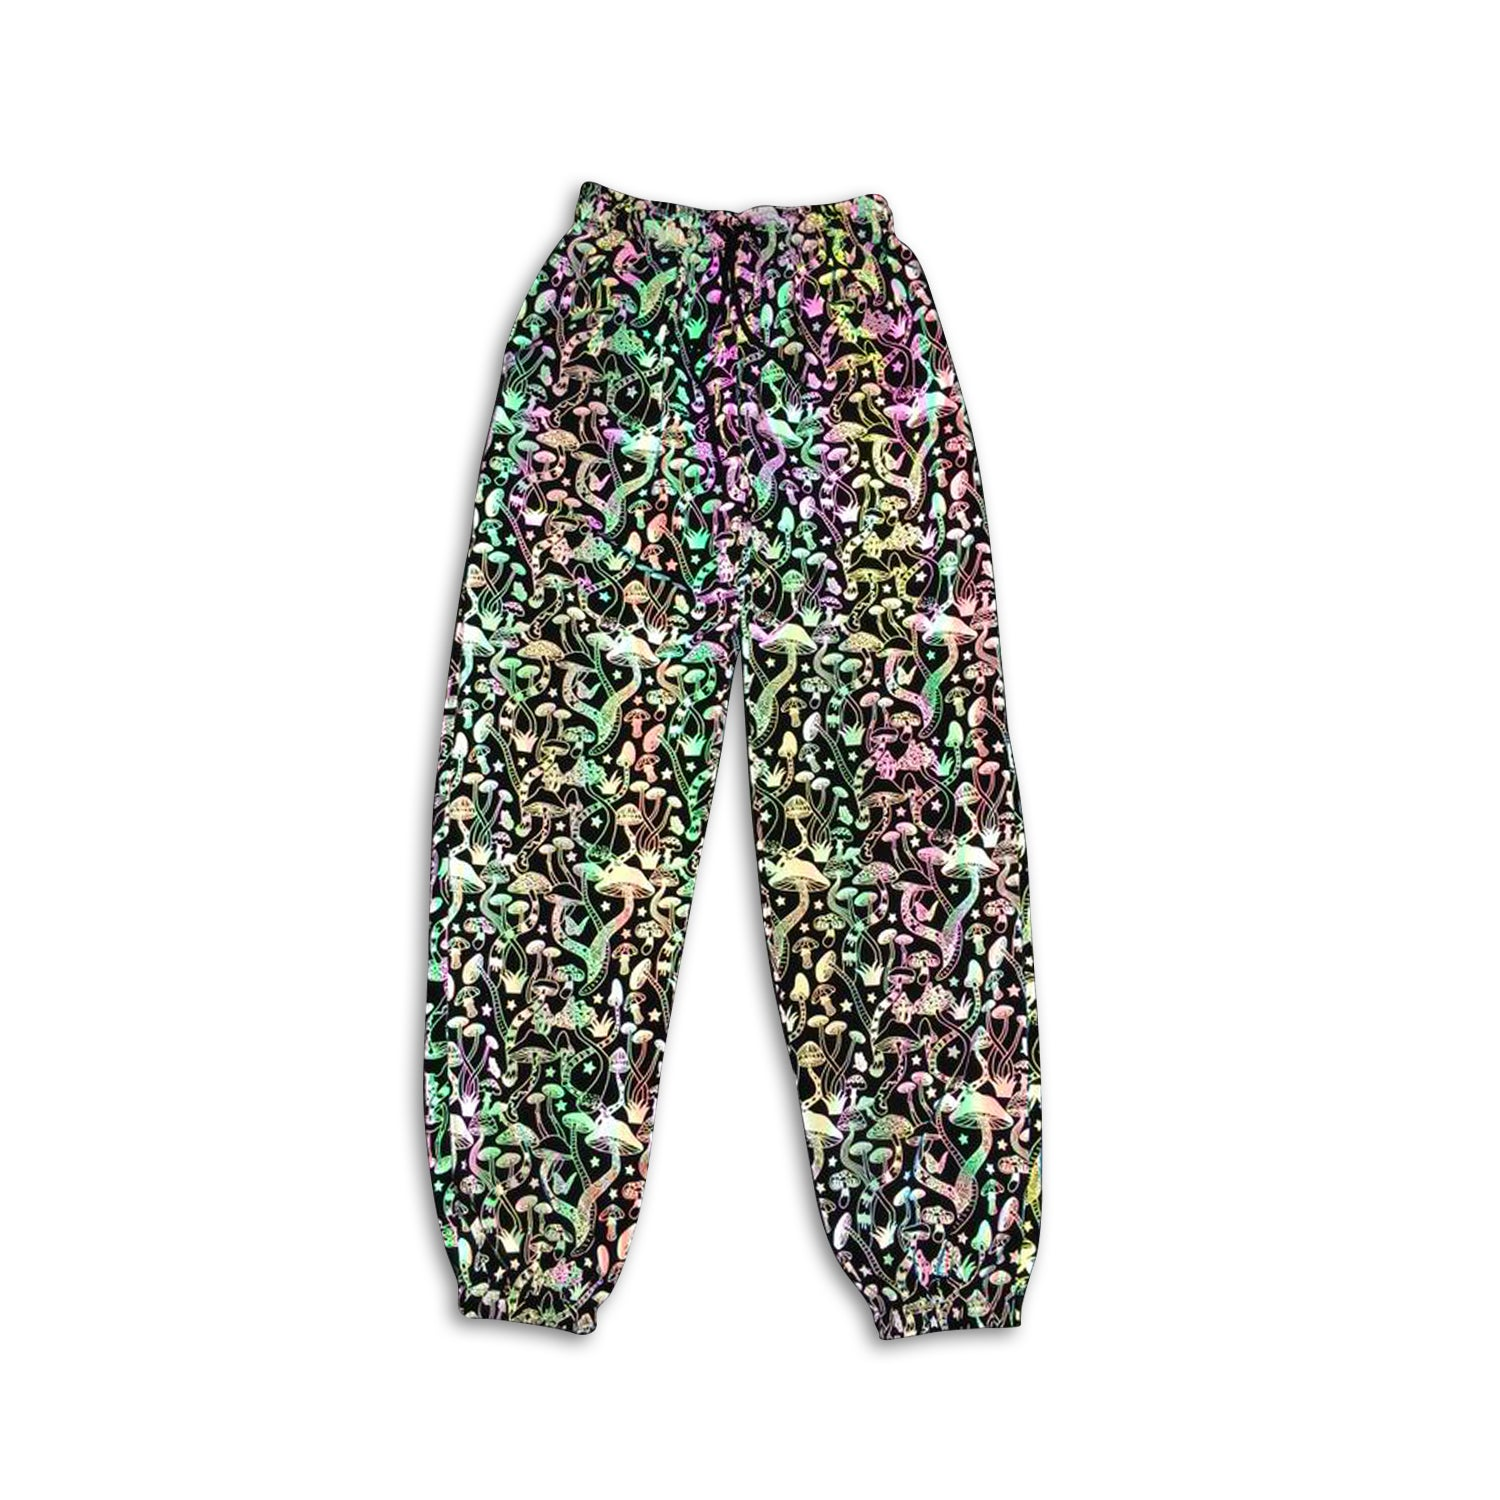 Mushroom Reflective Holographic Pants - glowcoco reflective clothing